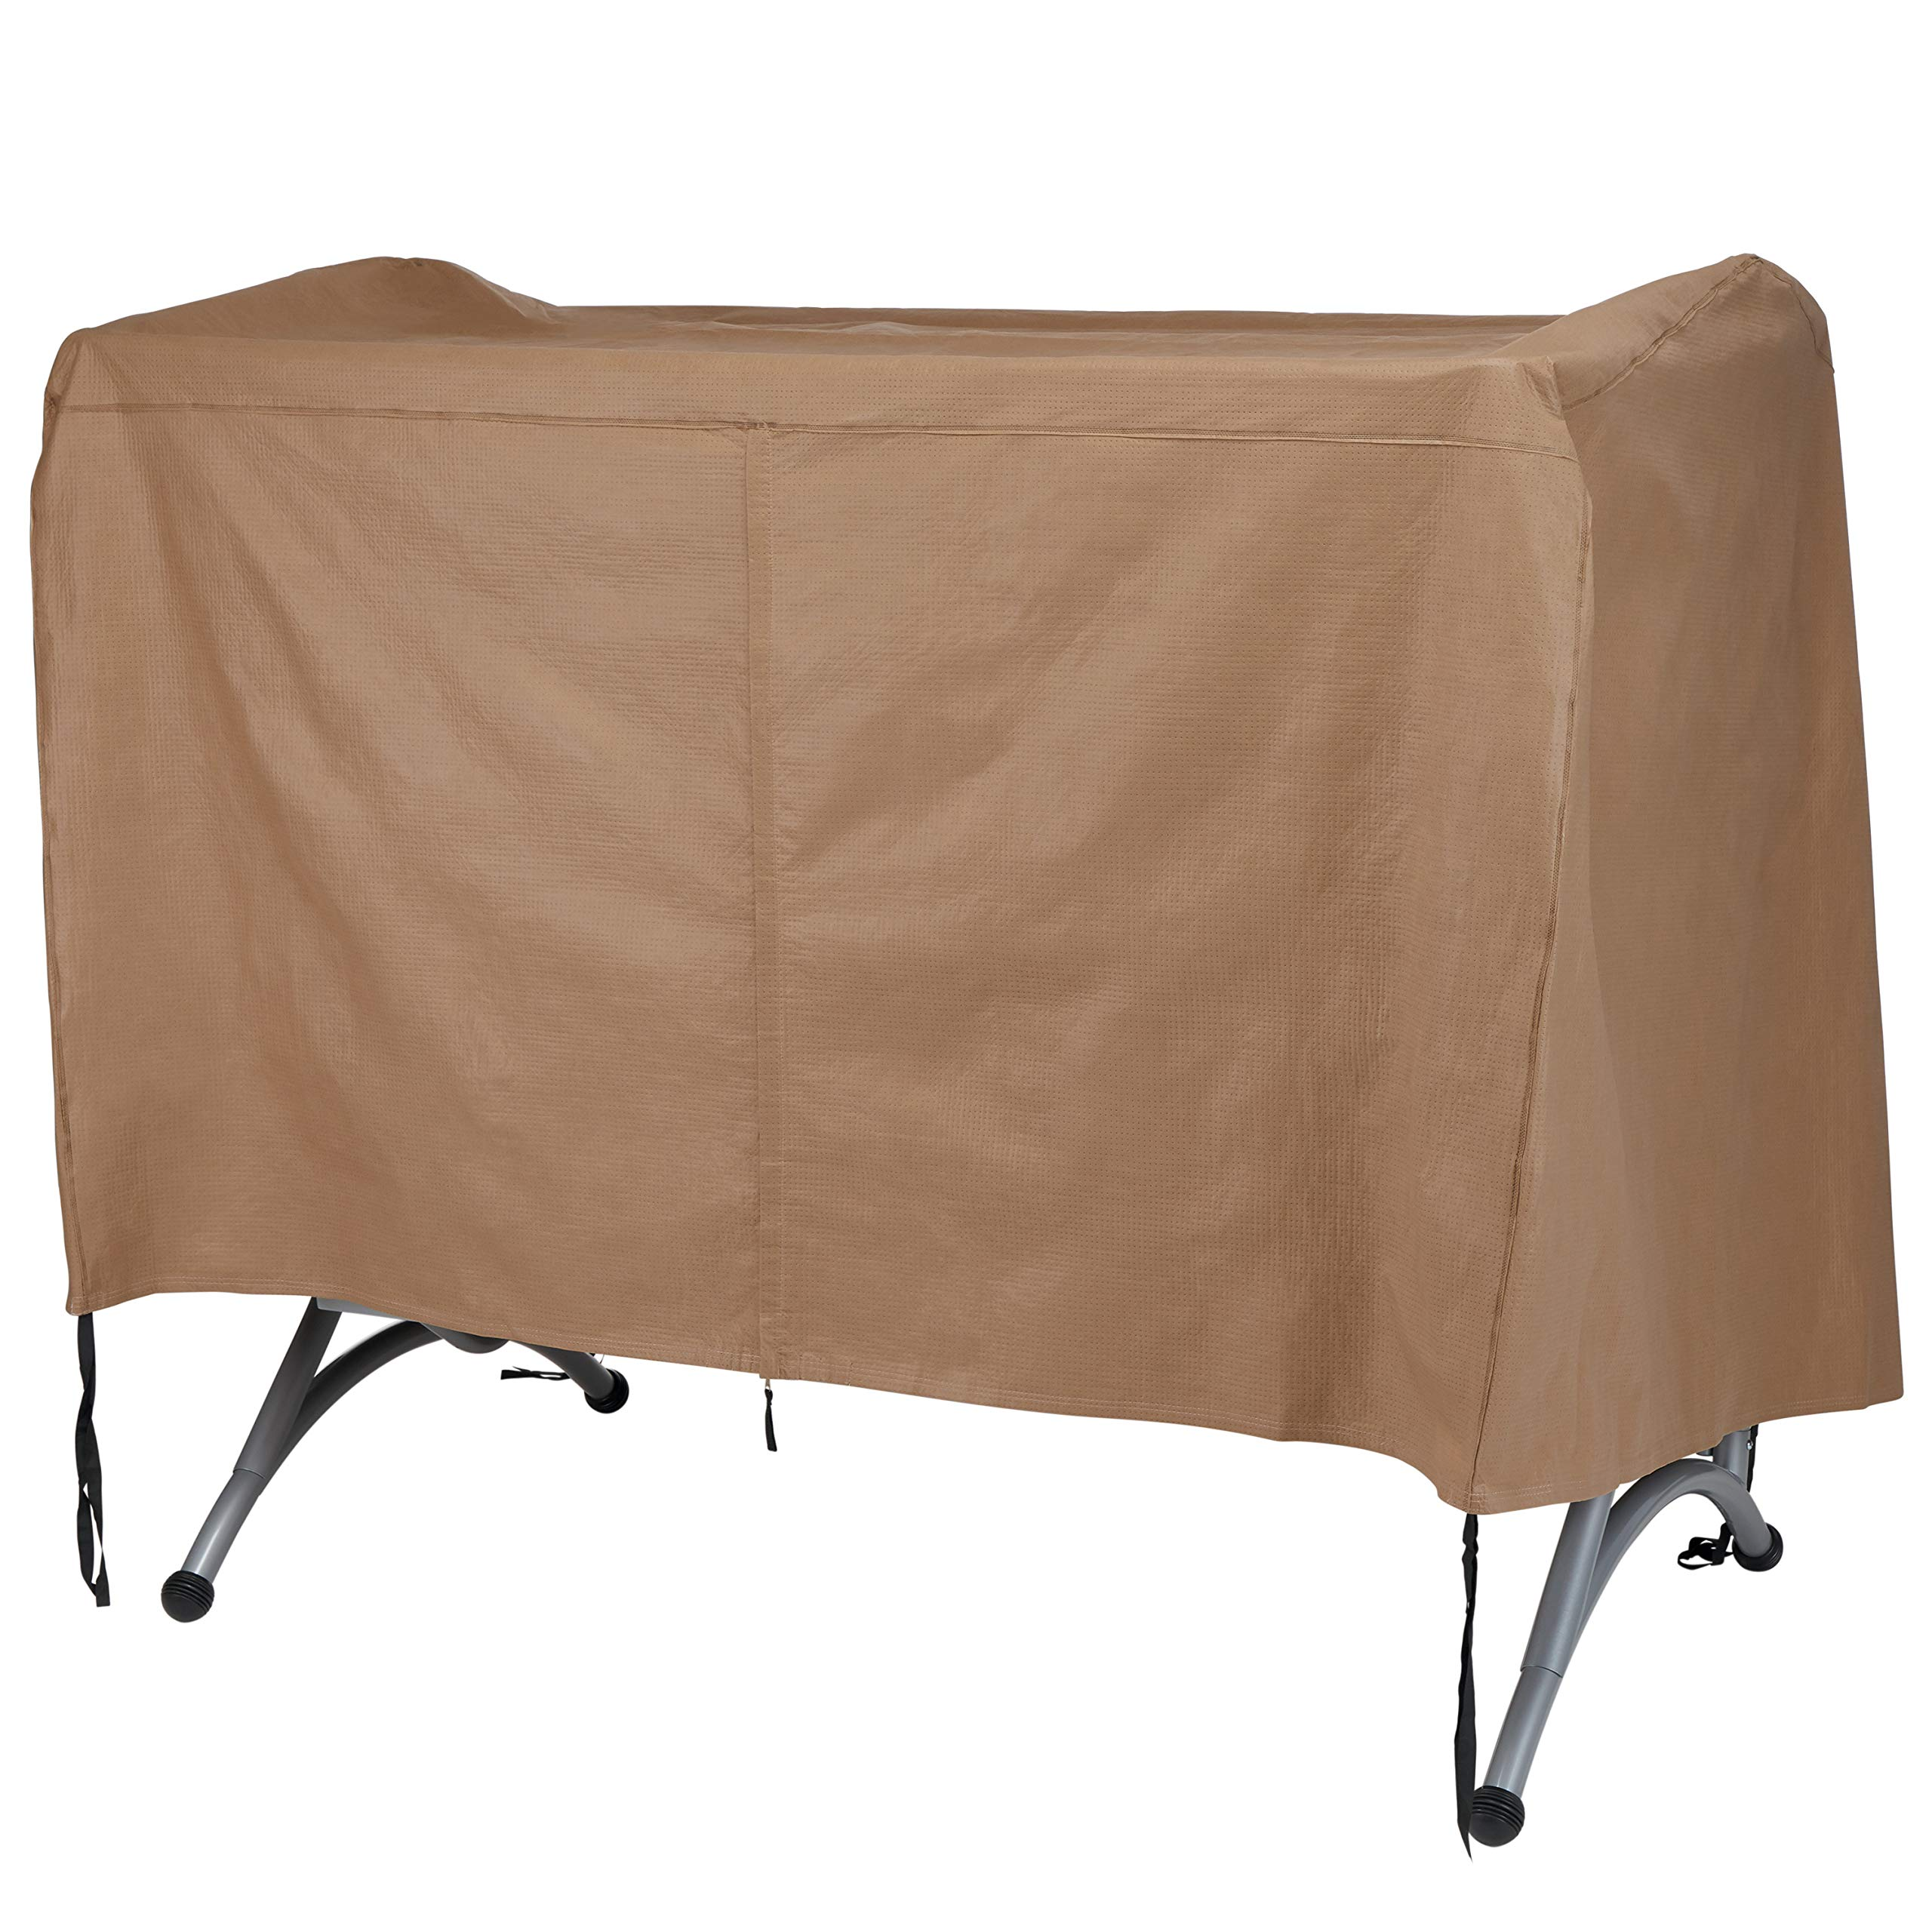 Duck Covers Essential 90'' Canopy Swing Cover by Duck Covers